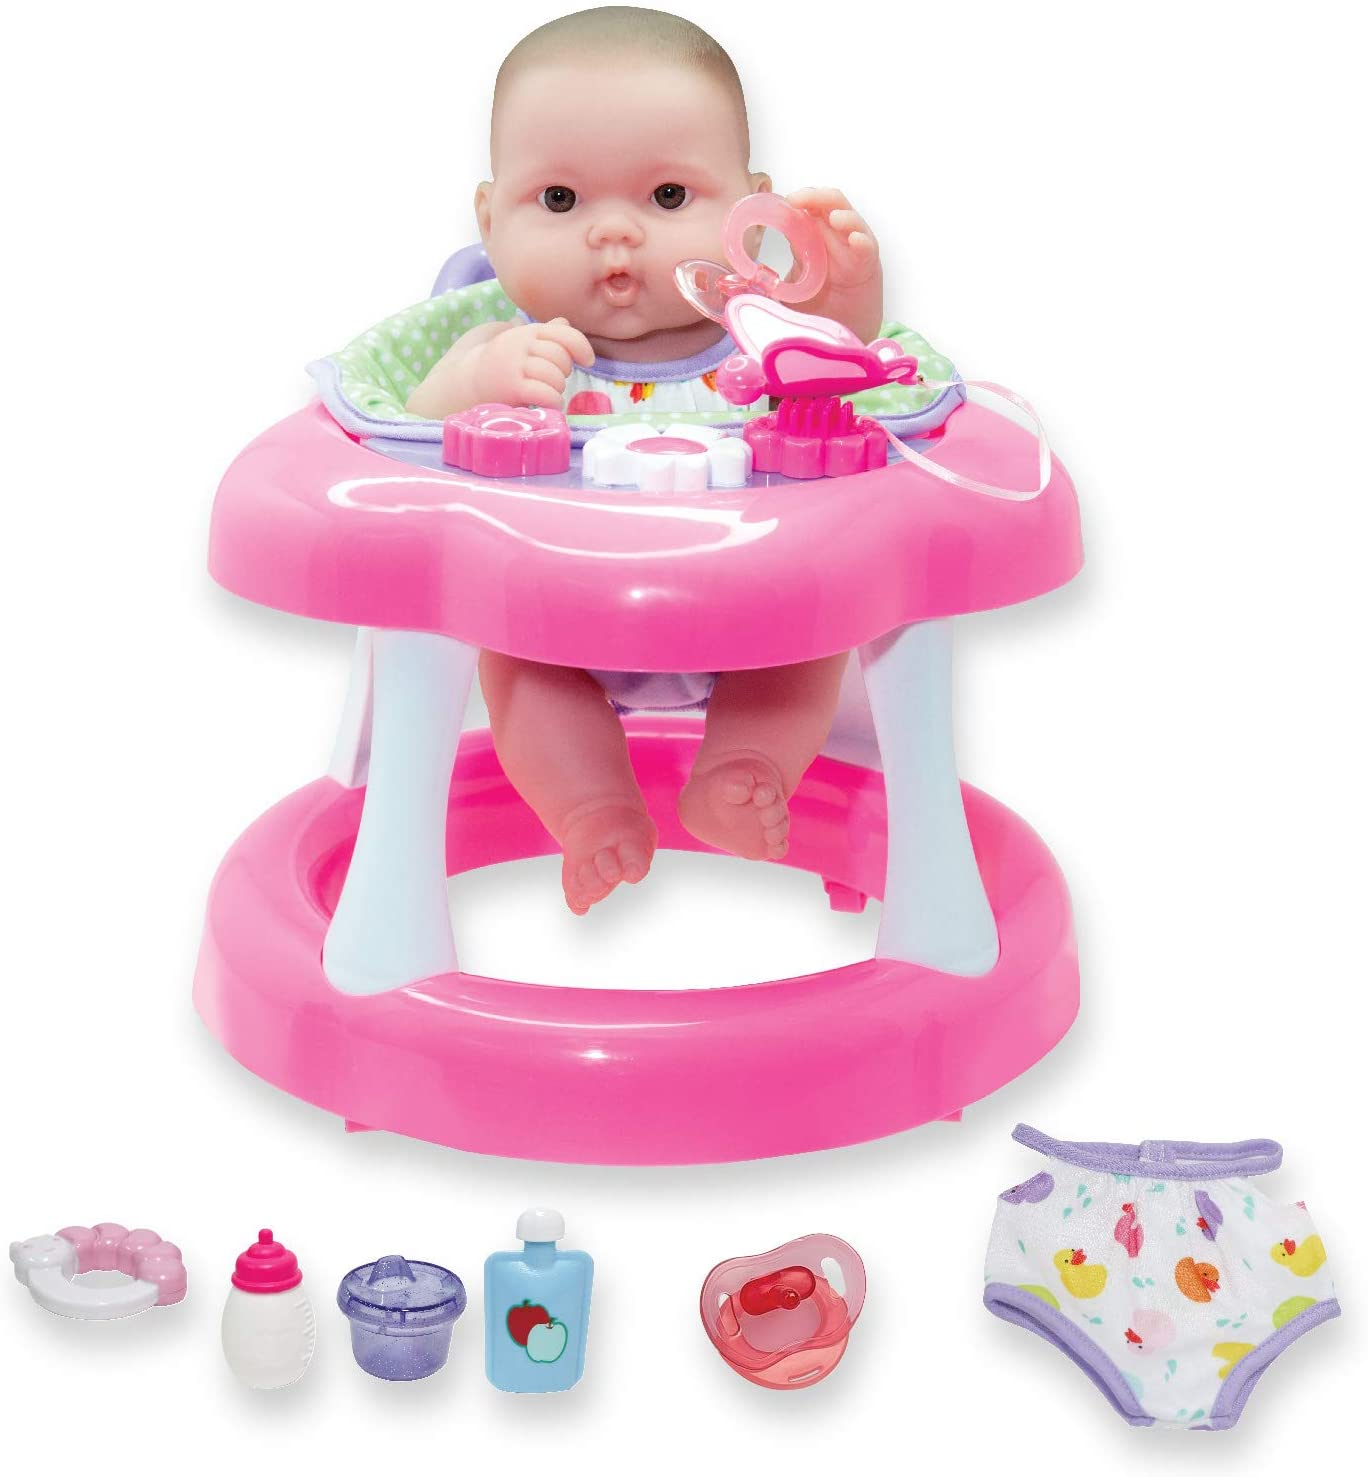 JC Toys Lots to Love Babies 14